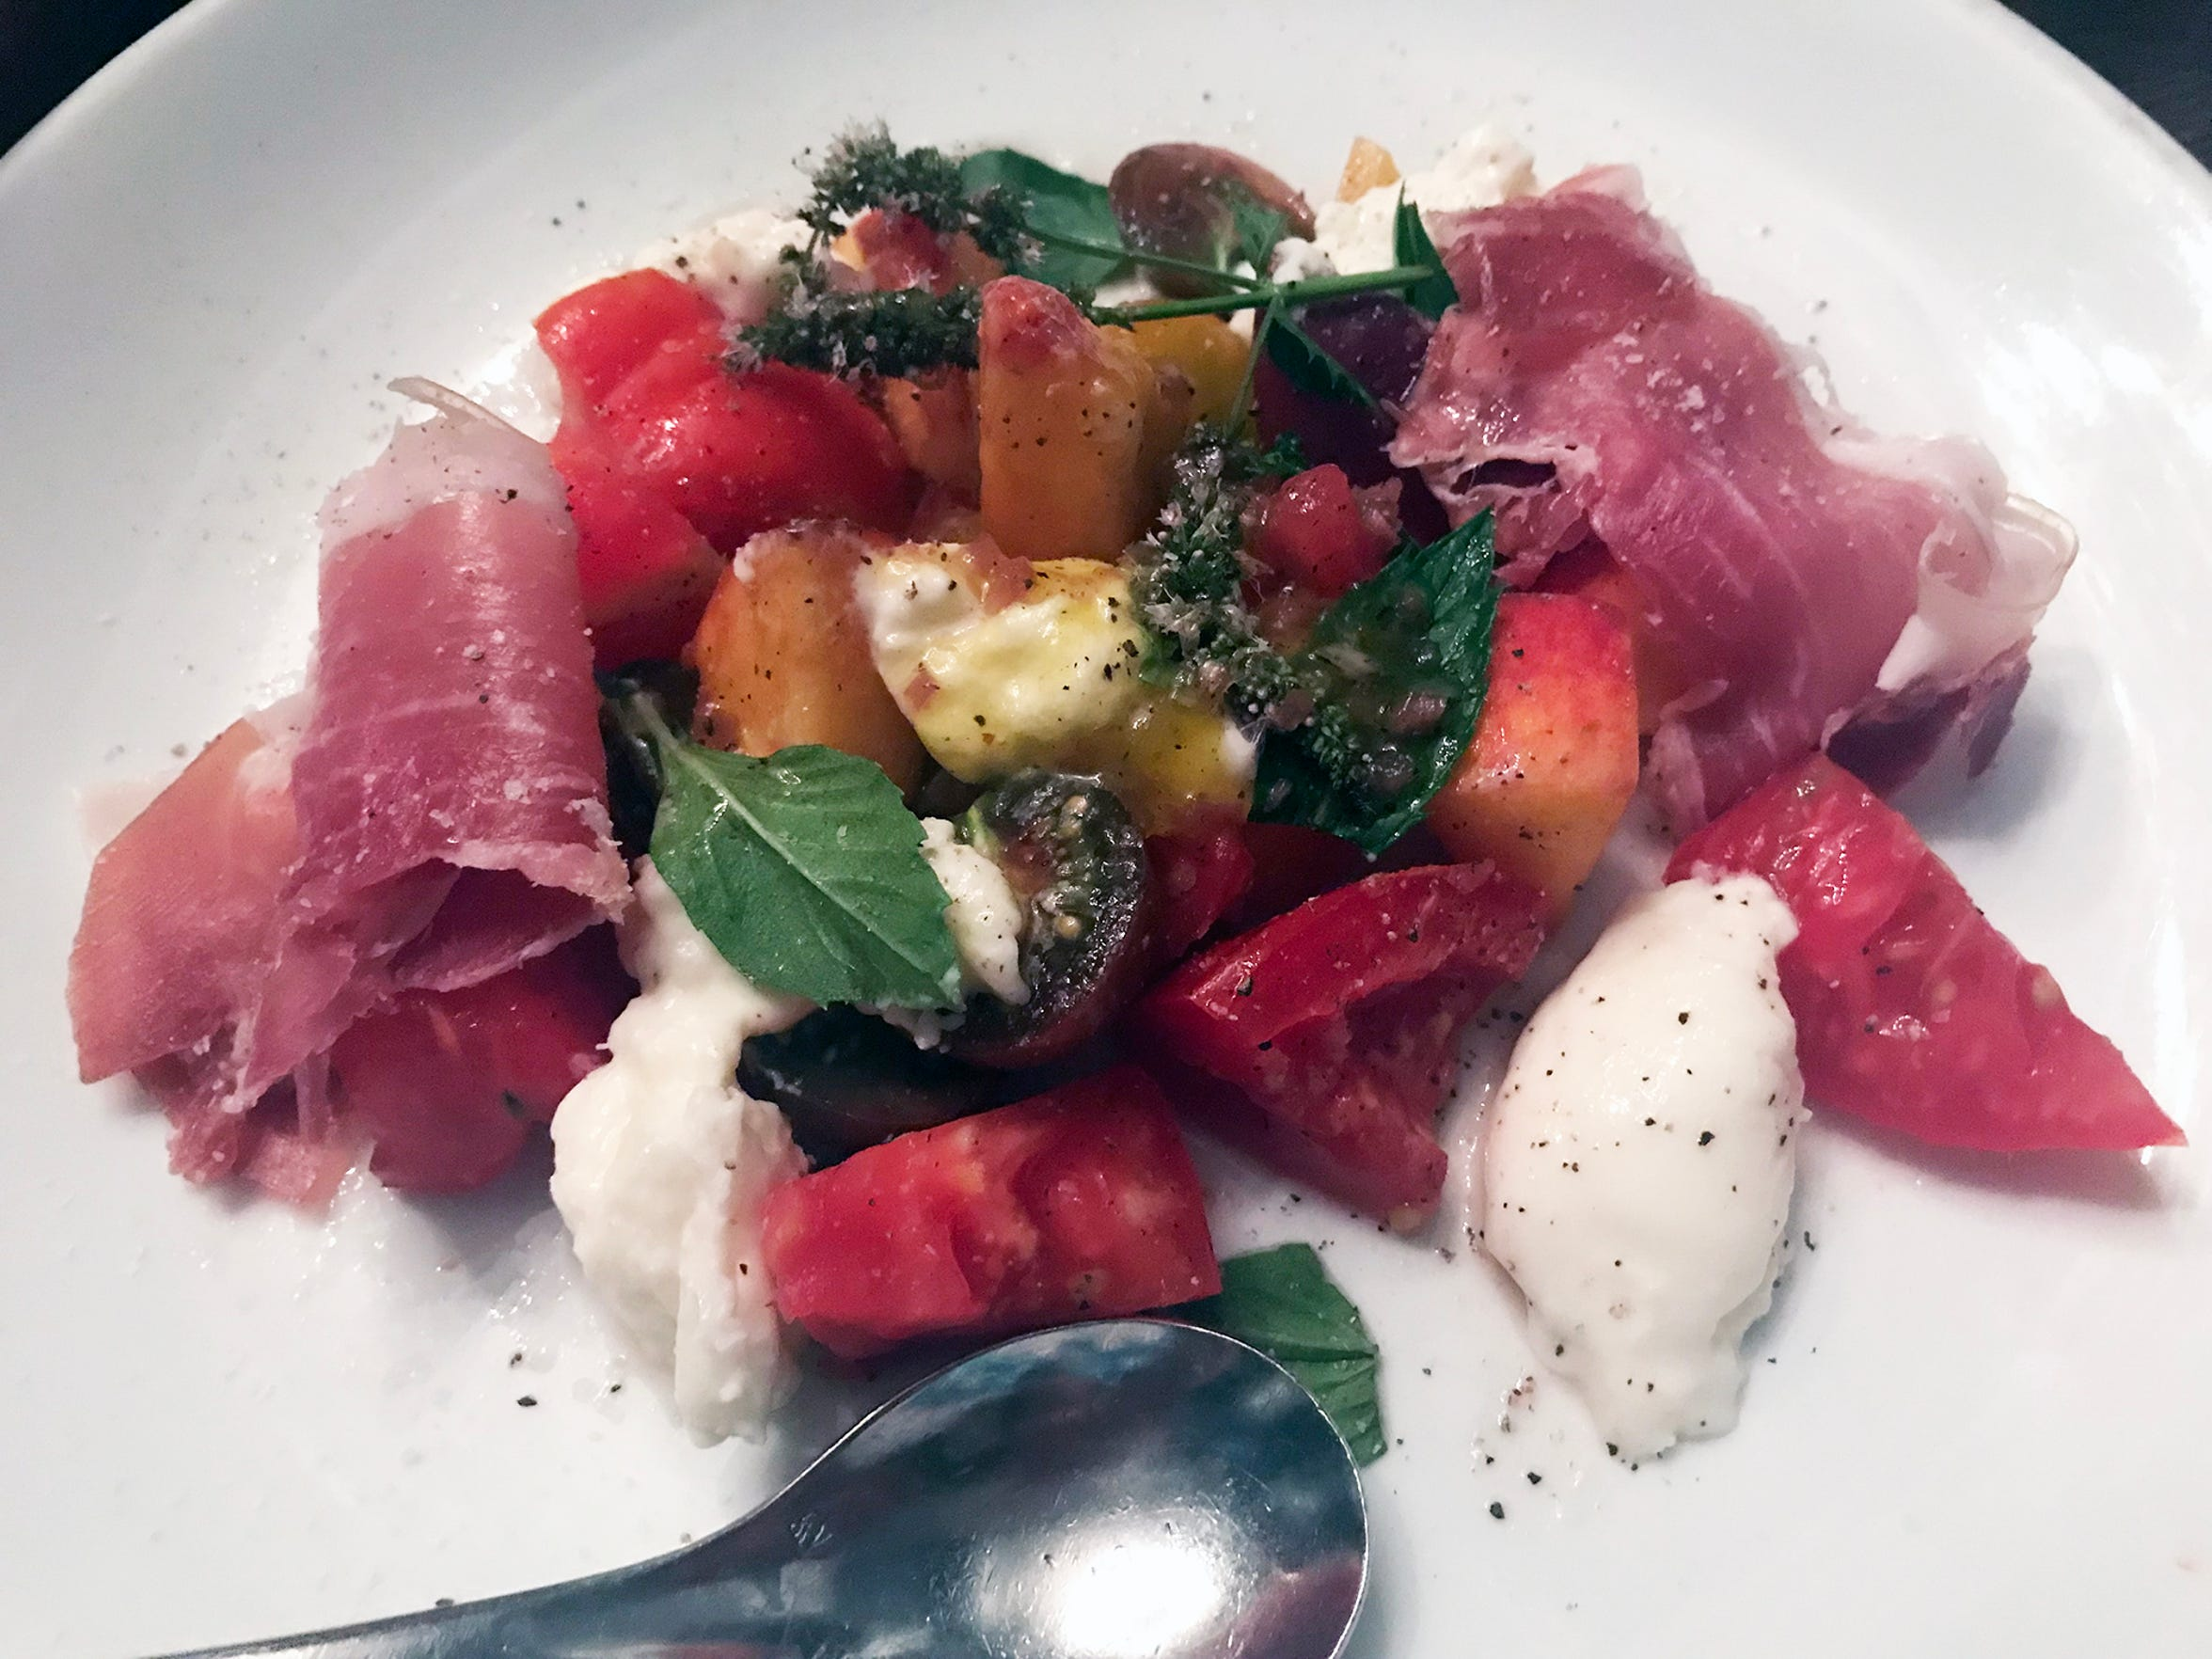 Seasonal ingredients (fresh peaches and tomatoes) meet creamy burrata cheese, prosciutto and fresh herbs in this bright salad at Crazy Water, 839 S. Second St.